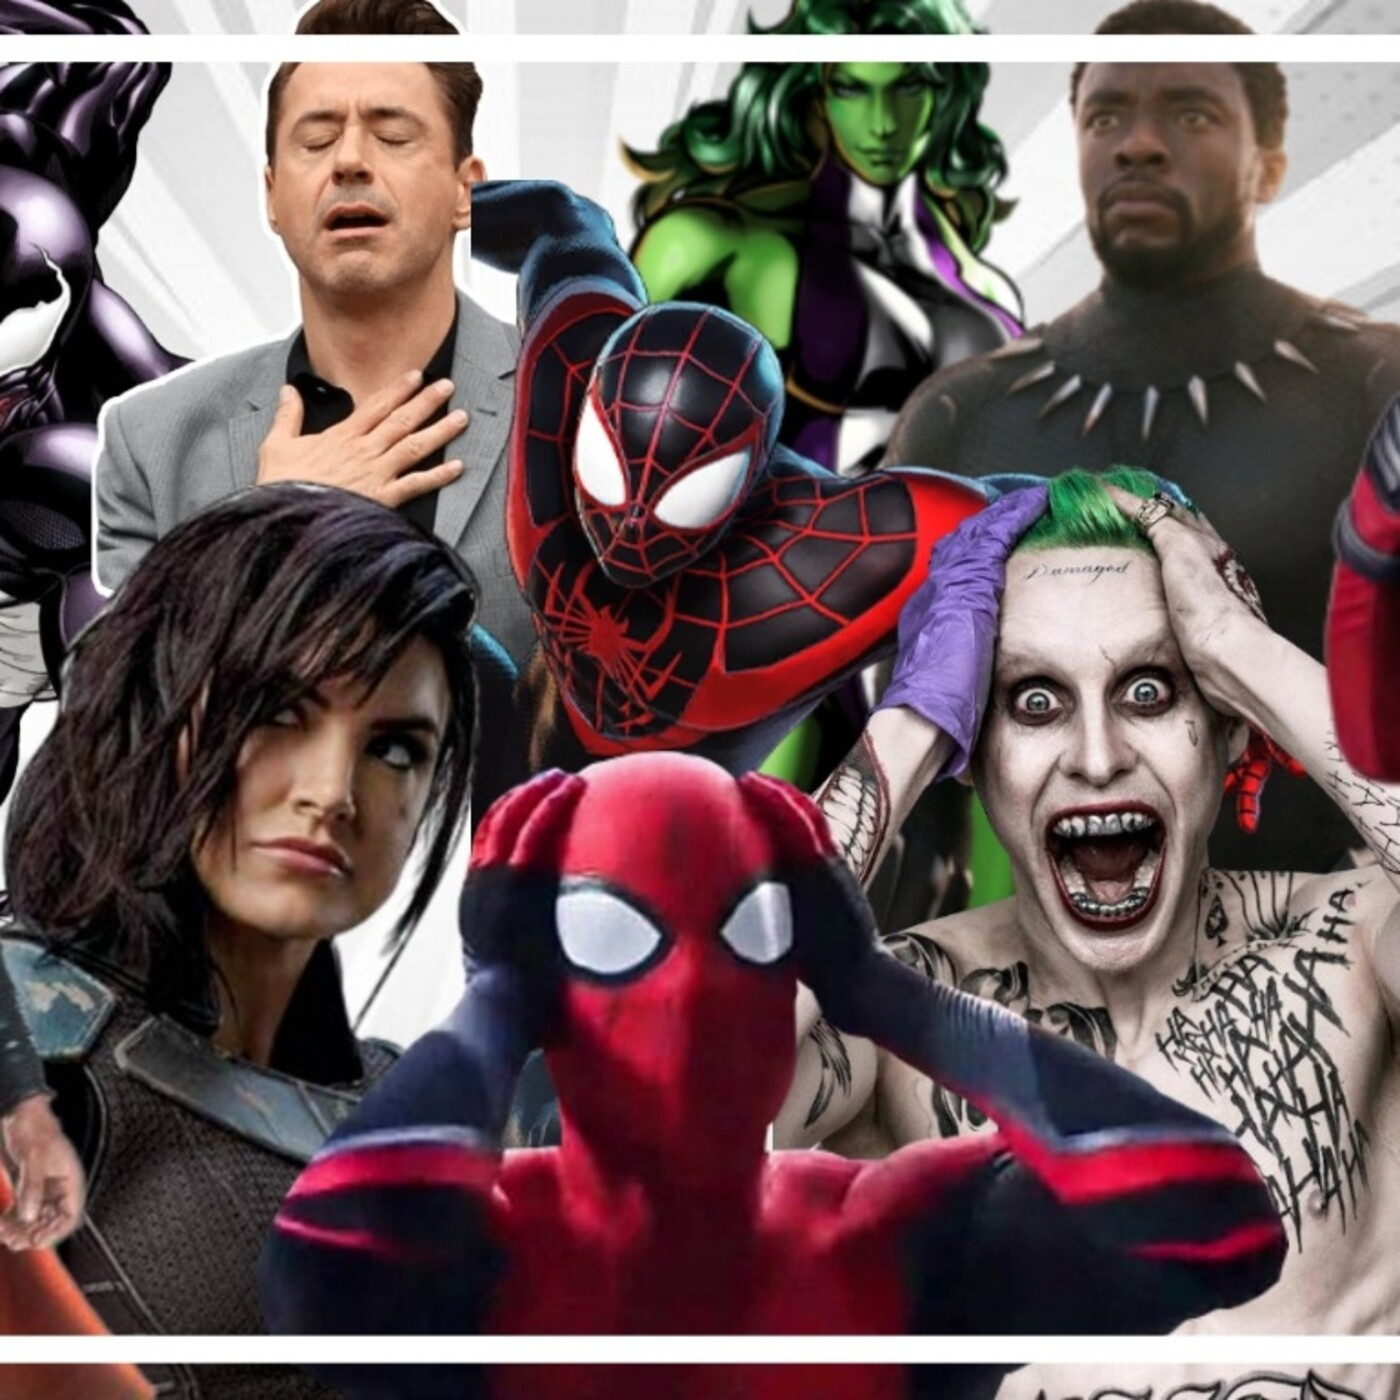 [RUMORES] - Venom y Miles morales en Spiderman3, Jared Leto vuelve como Joker, Robert Downey en star wars